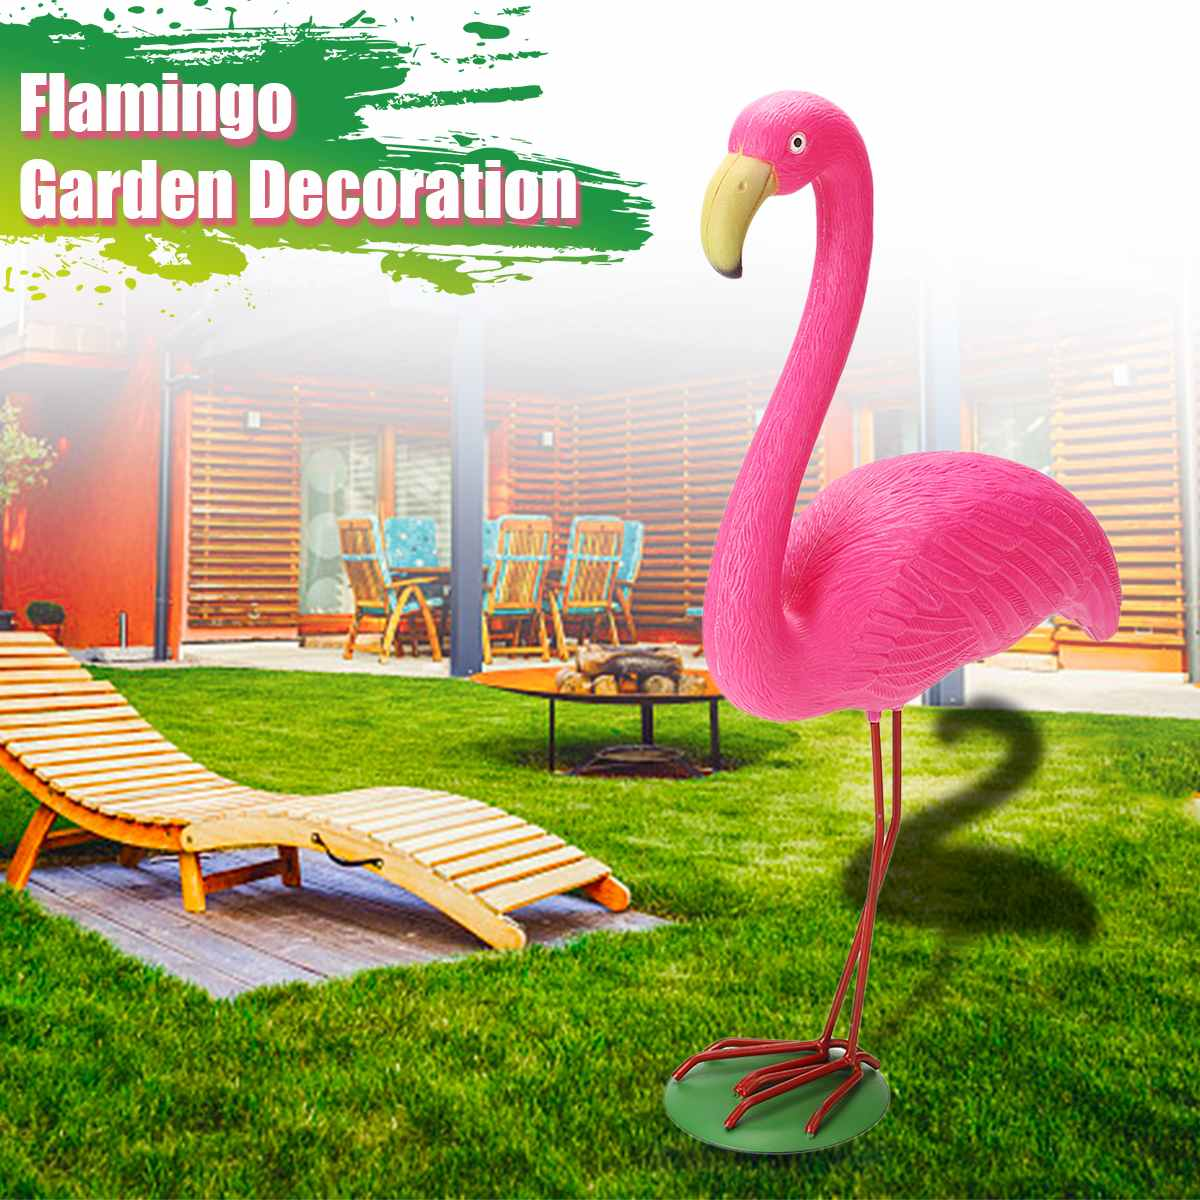 M Size 31x10.5x40cm Pink Flamingo Ornament Set Garden Resin + Metal Outdoor Lawn Light Decoration Ornament Home Garden Yard Room